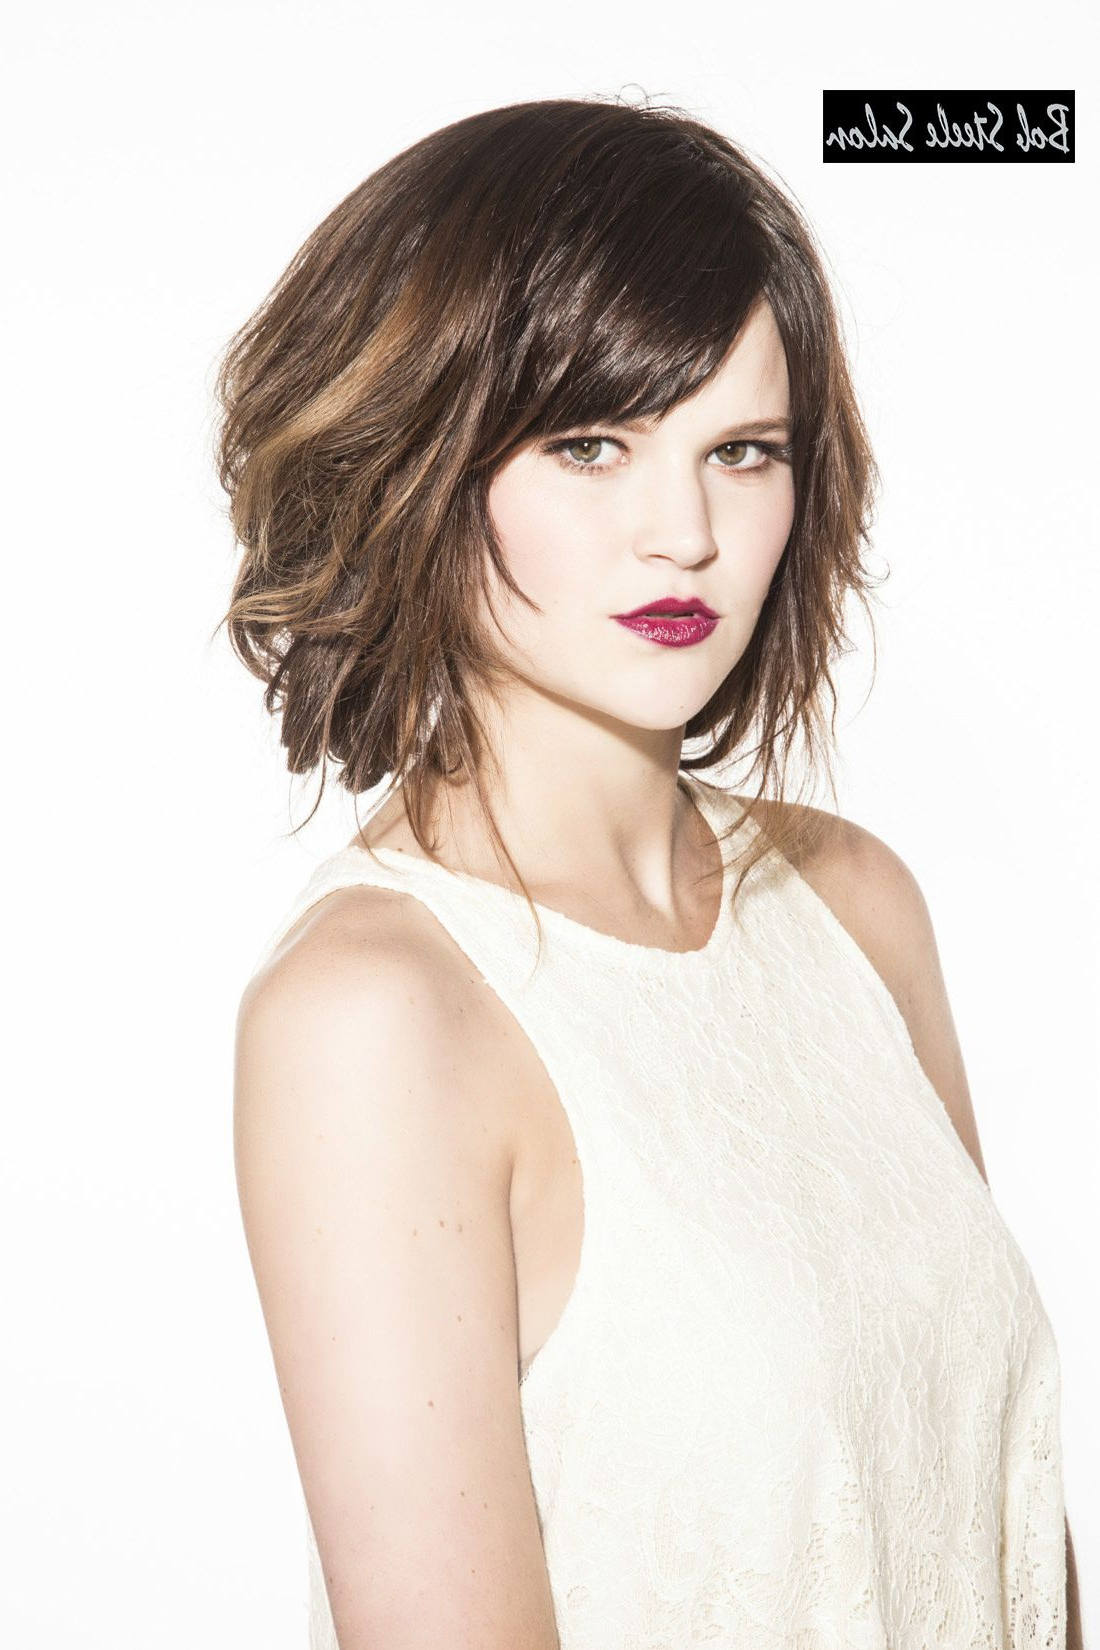 34 Greatest Short Haircuts And Hairstyles For Thick Hair For 2018 Regarding Edgy Short Haircuts For Thick Hair (View 16 of 25)